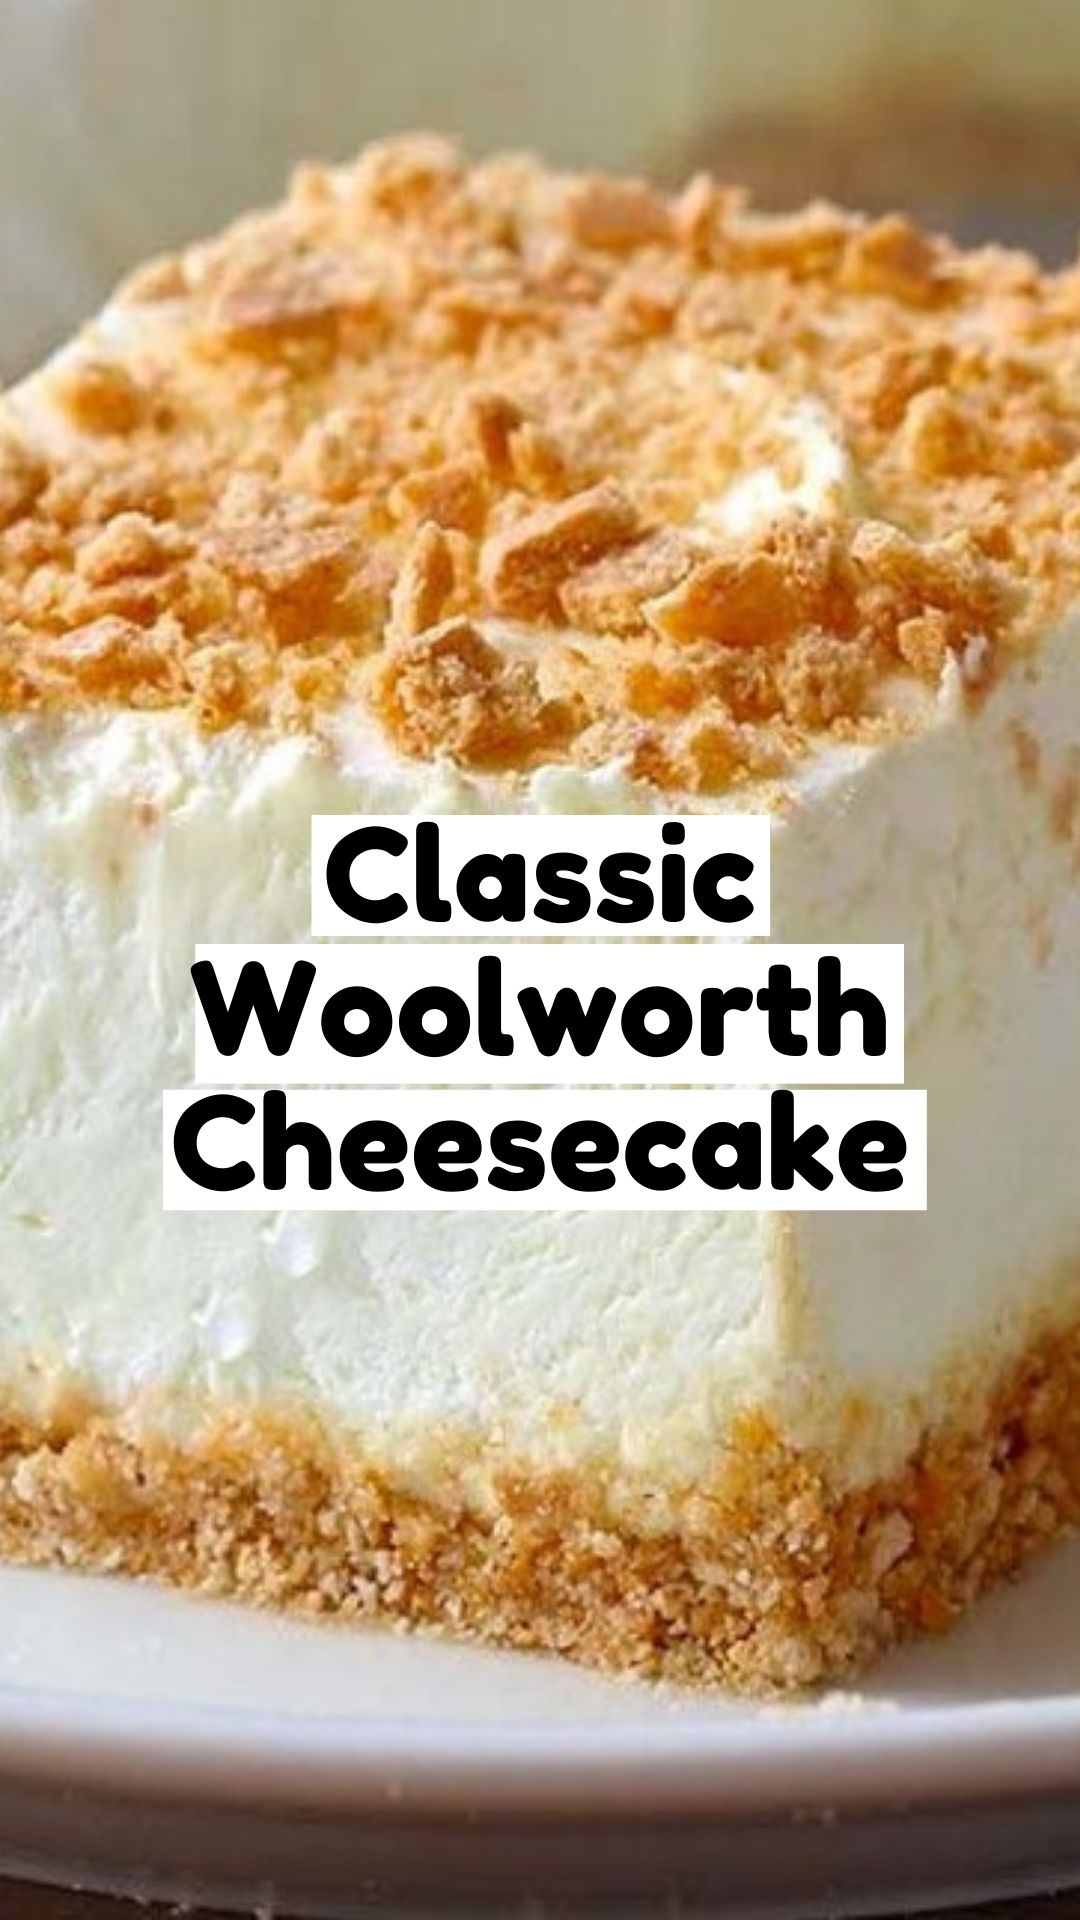 Easy No Bake Classic Woolworth Cheesecake Recipe